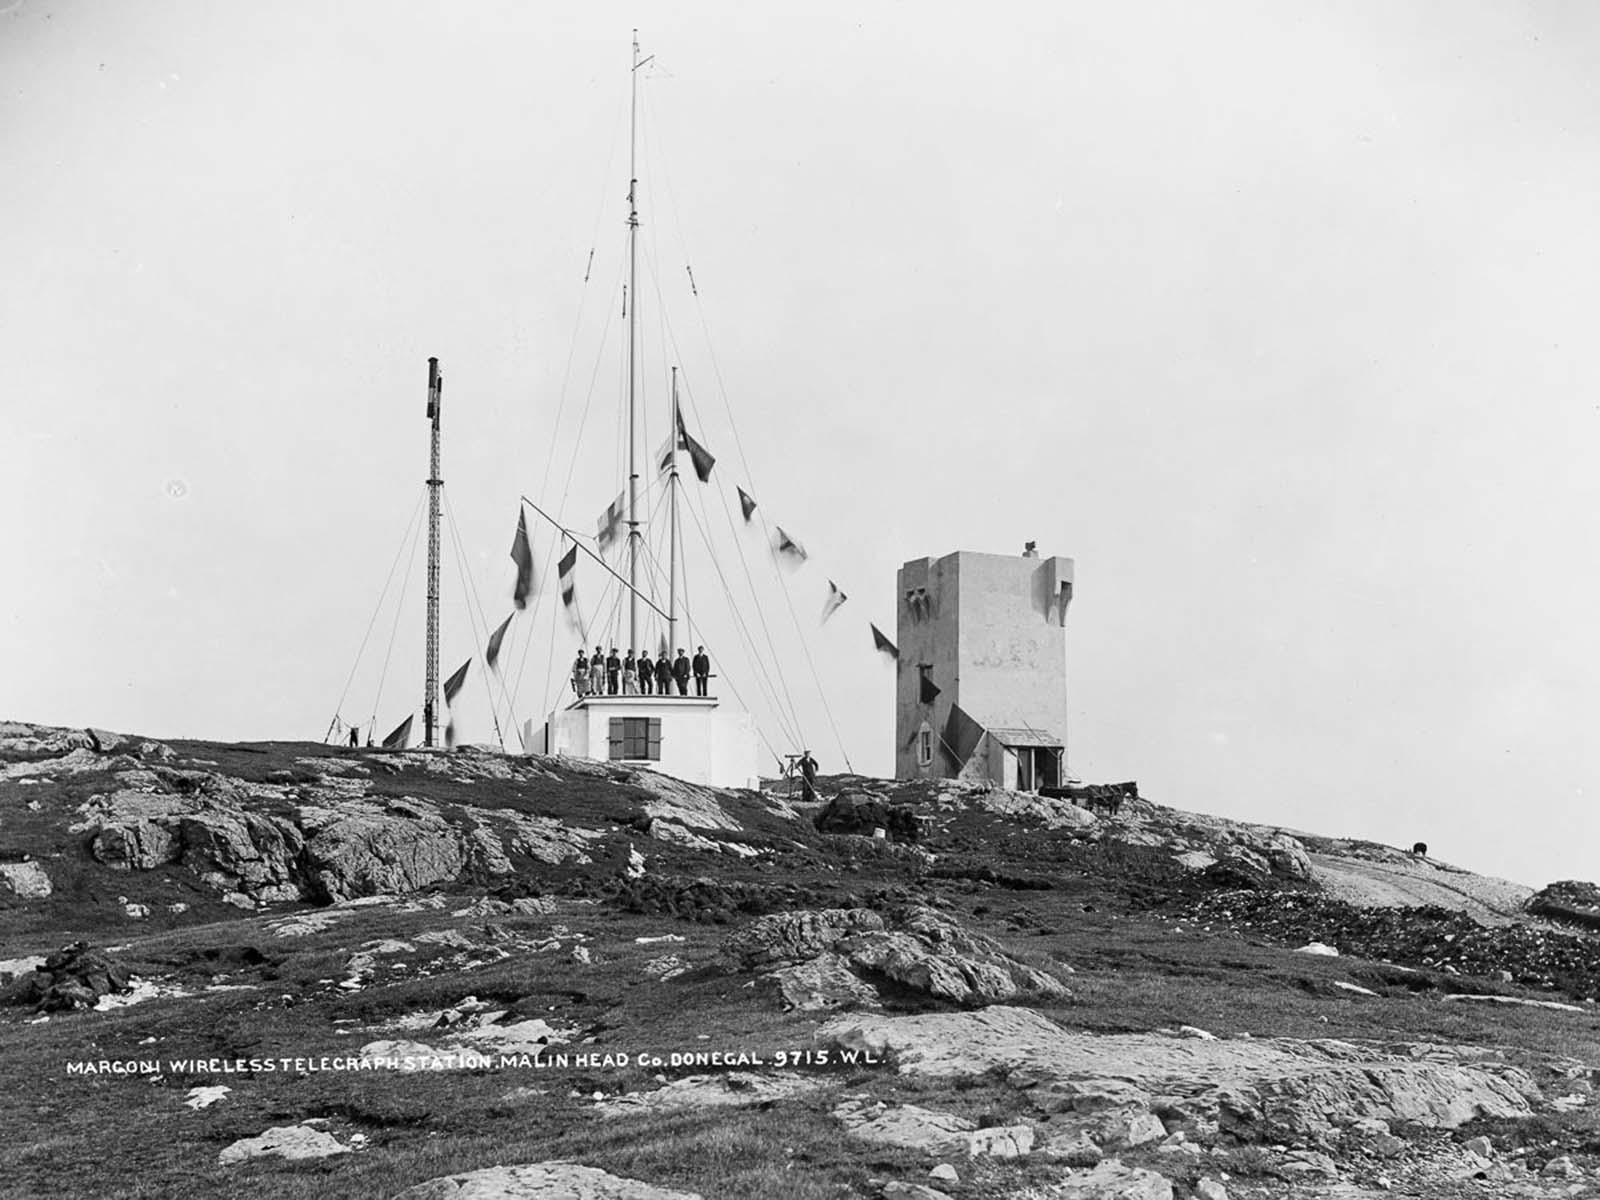 Marconi Wireless Telegraph Station, Malin Head, County Donegal. 1902.